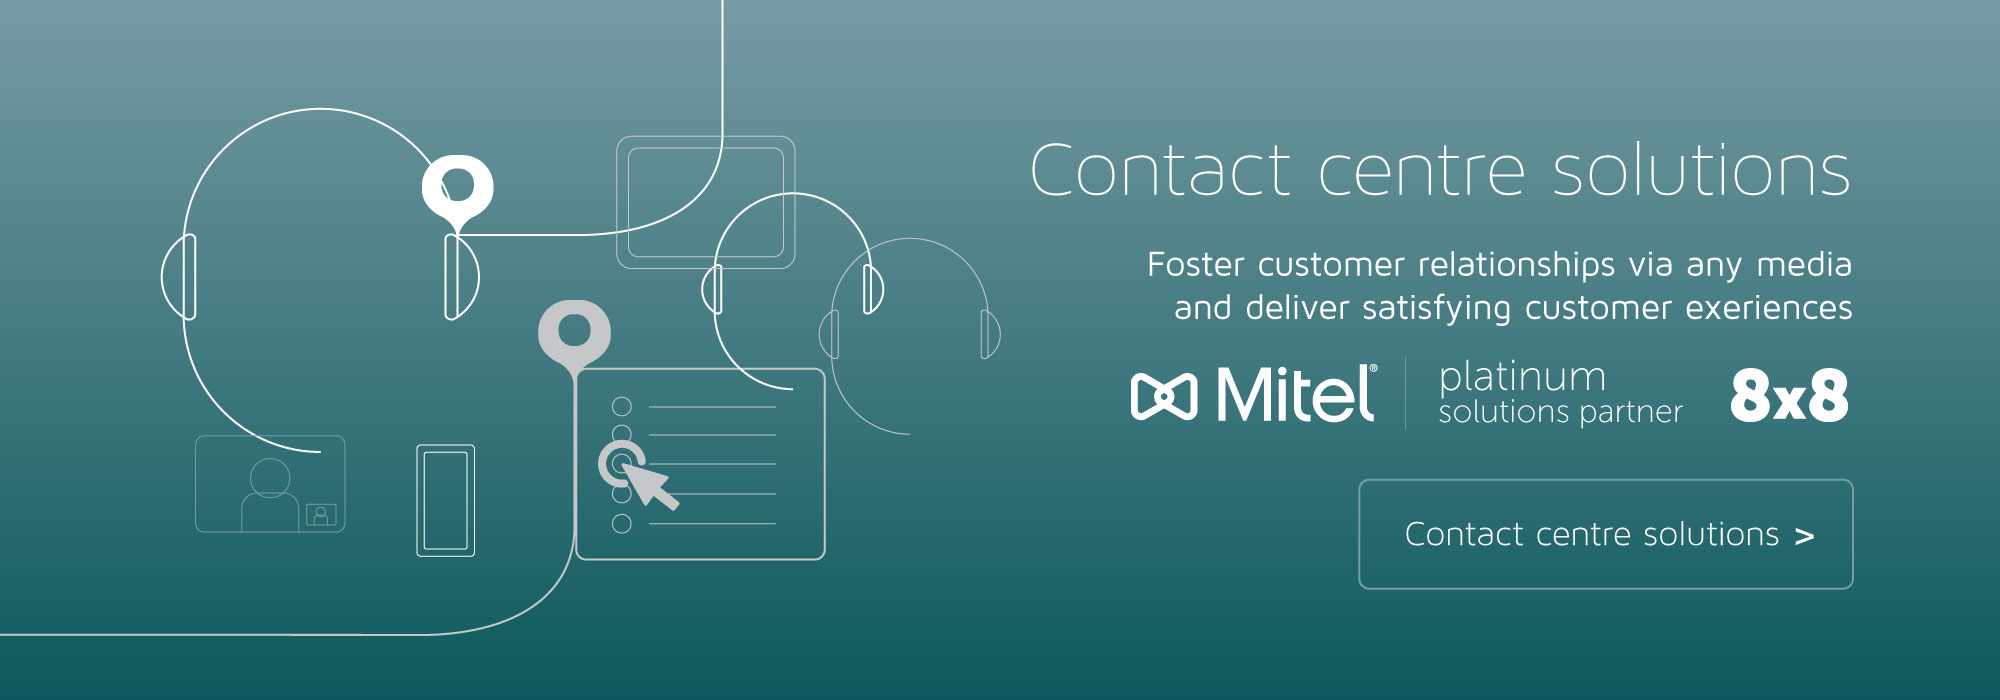 Contact Centres Customer Experience